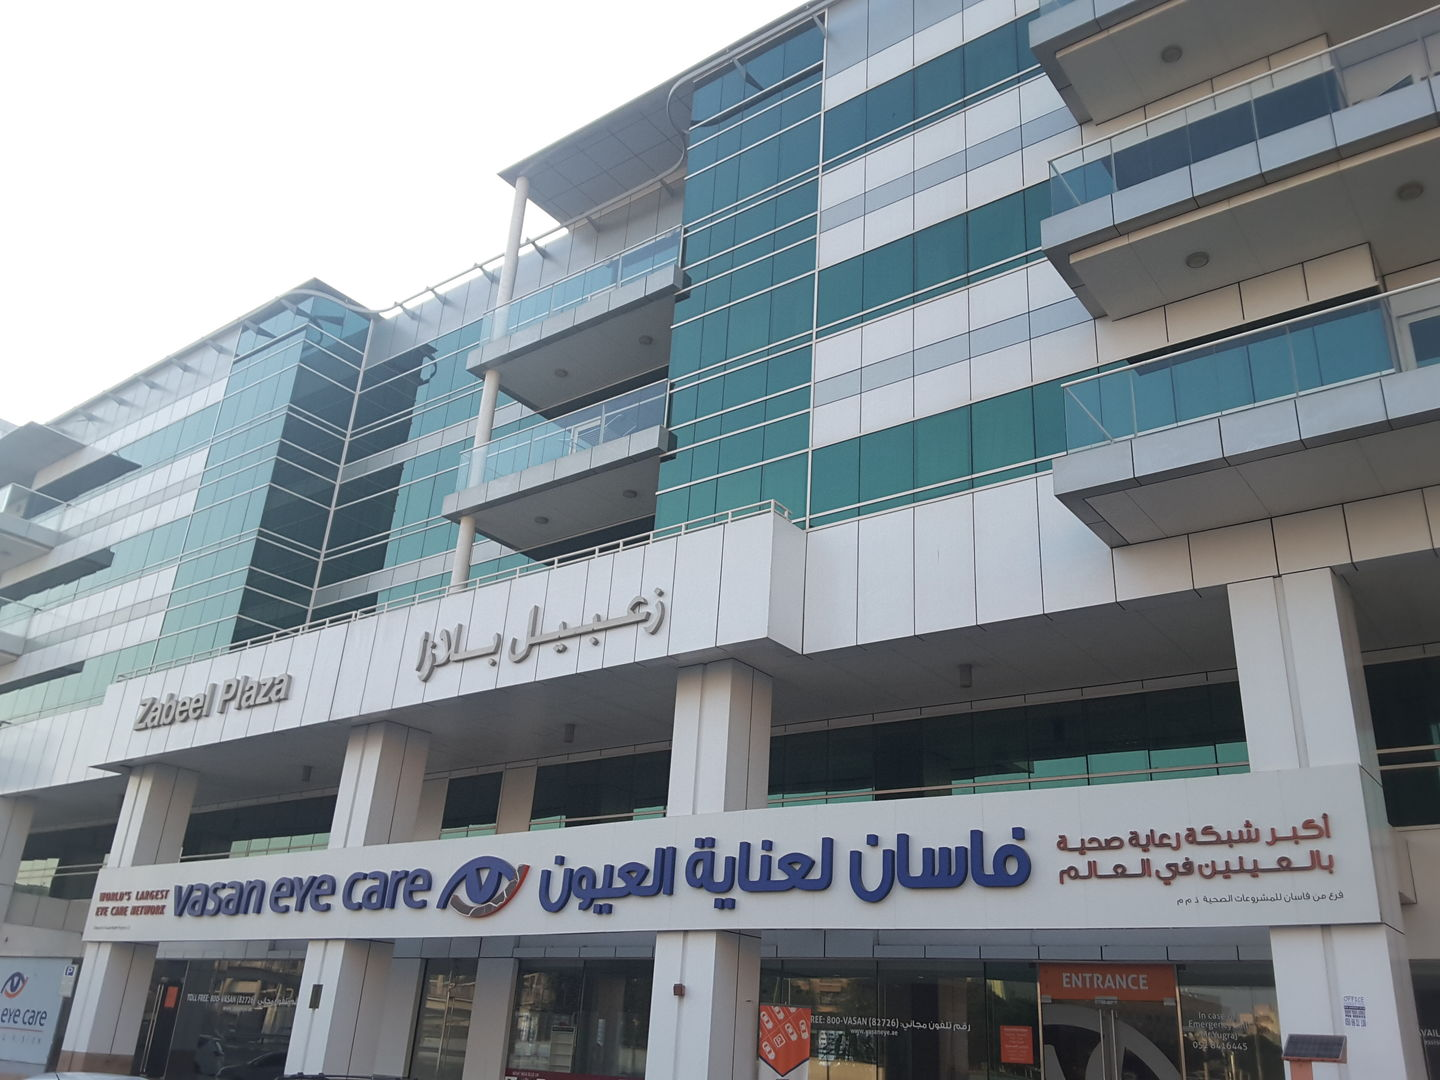 HiDubai-business-vasan-eye-multispeciality-day-surgical-center-beauty-wellness-health-specialty-clinics-al-karama-dubai